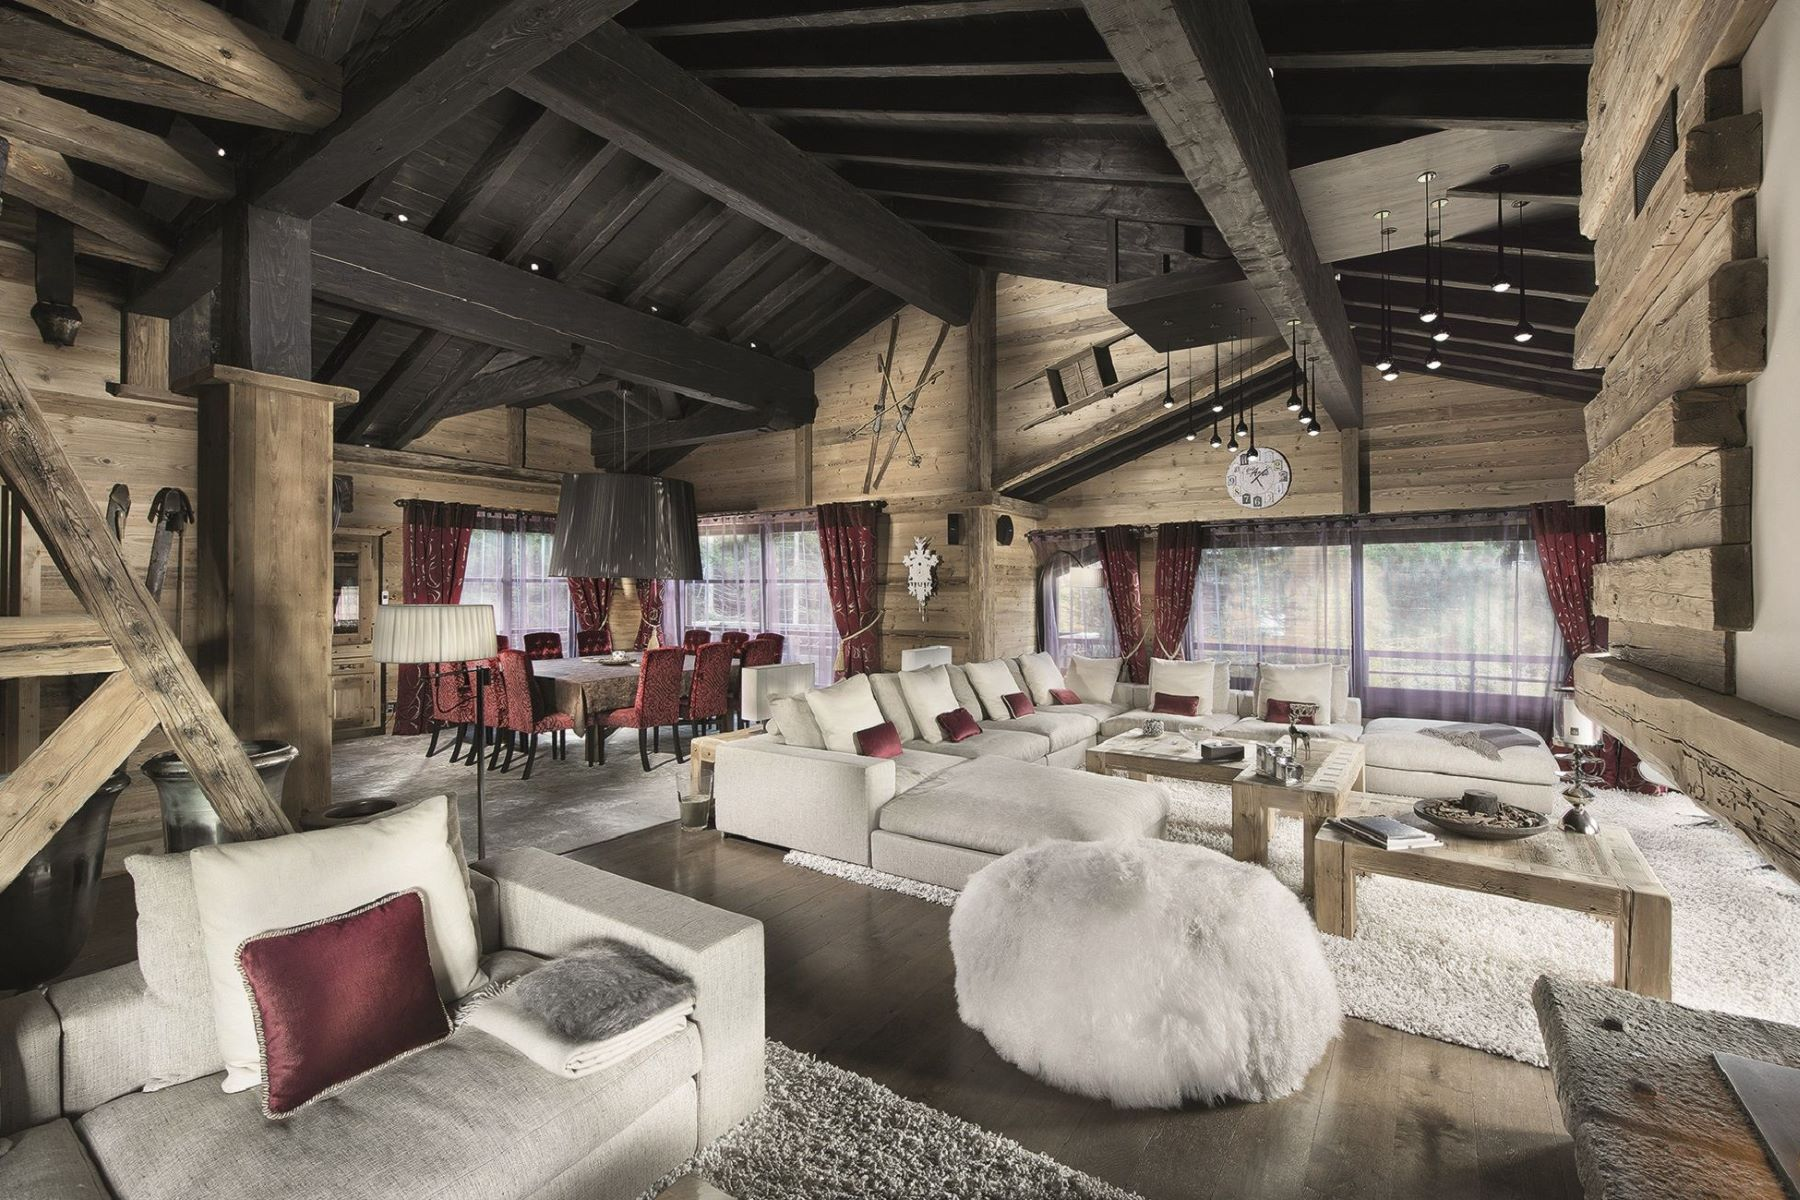 Single Family Home for Sale at Luxury Chalet Courchevel Courchevel, Rhone-Alpes, 73120 France